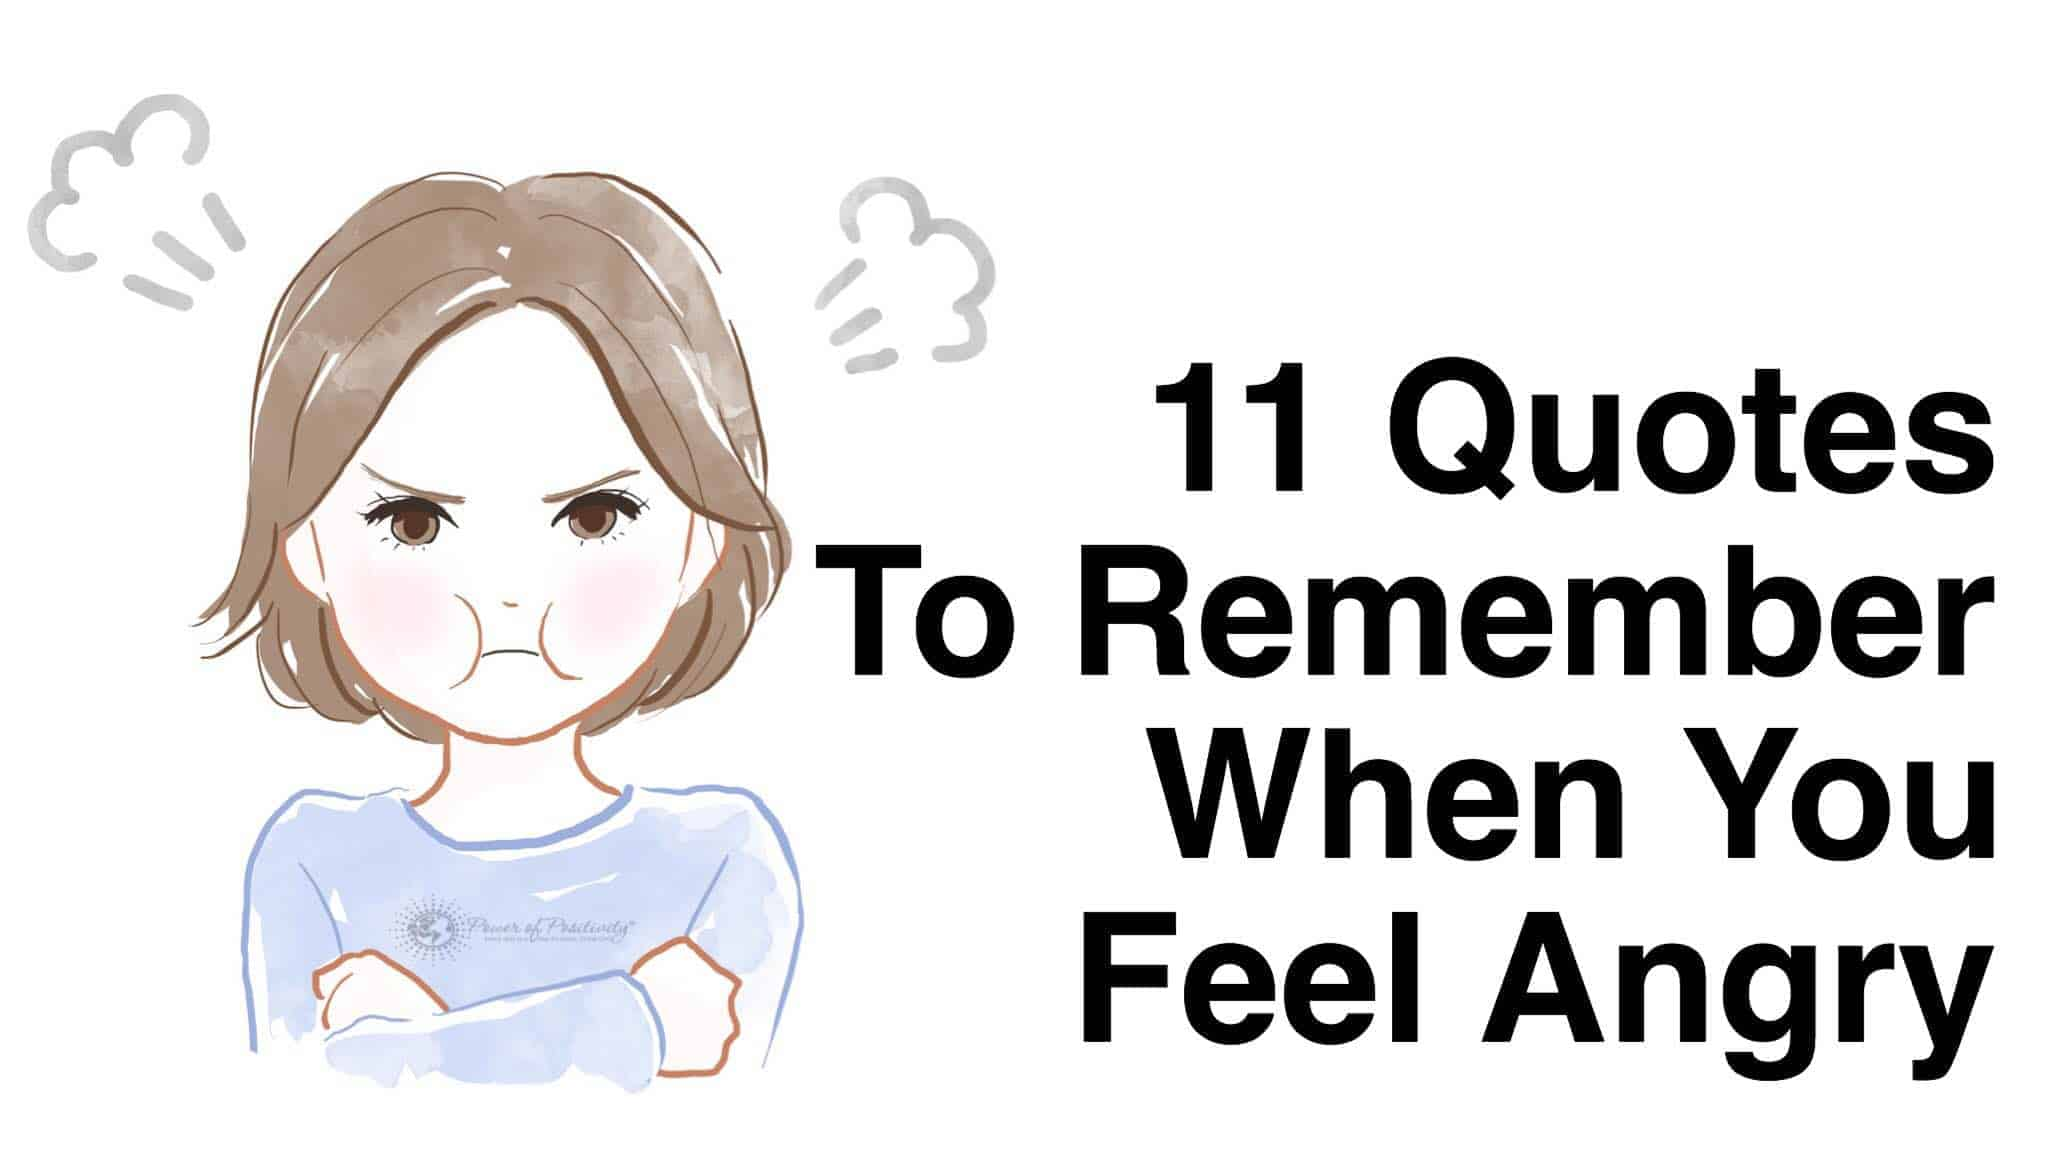 11 Quotes To Remember When You Feel Angry